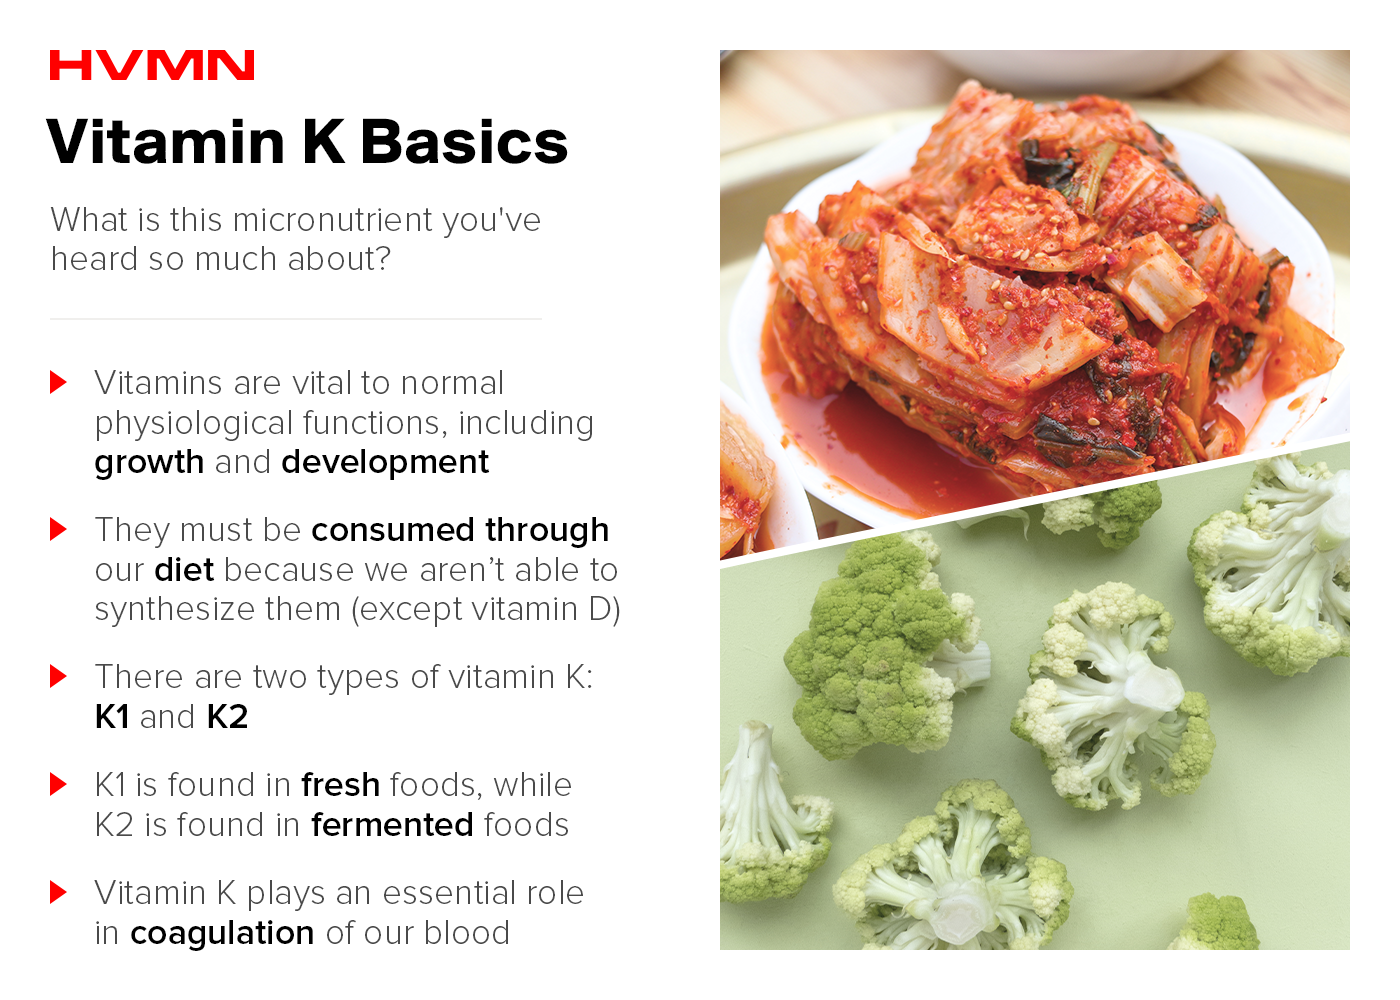 An image of kimchee and broccoli, showing the basics of vitamin k in our foods